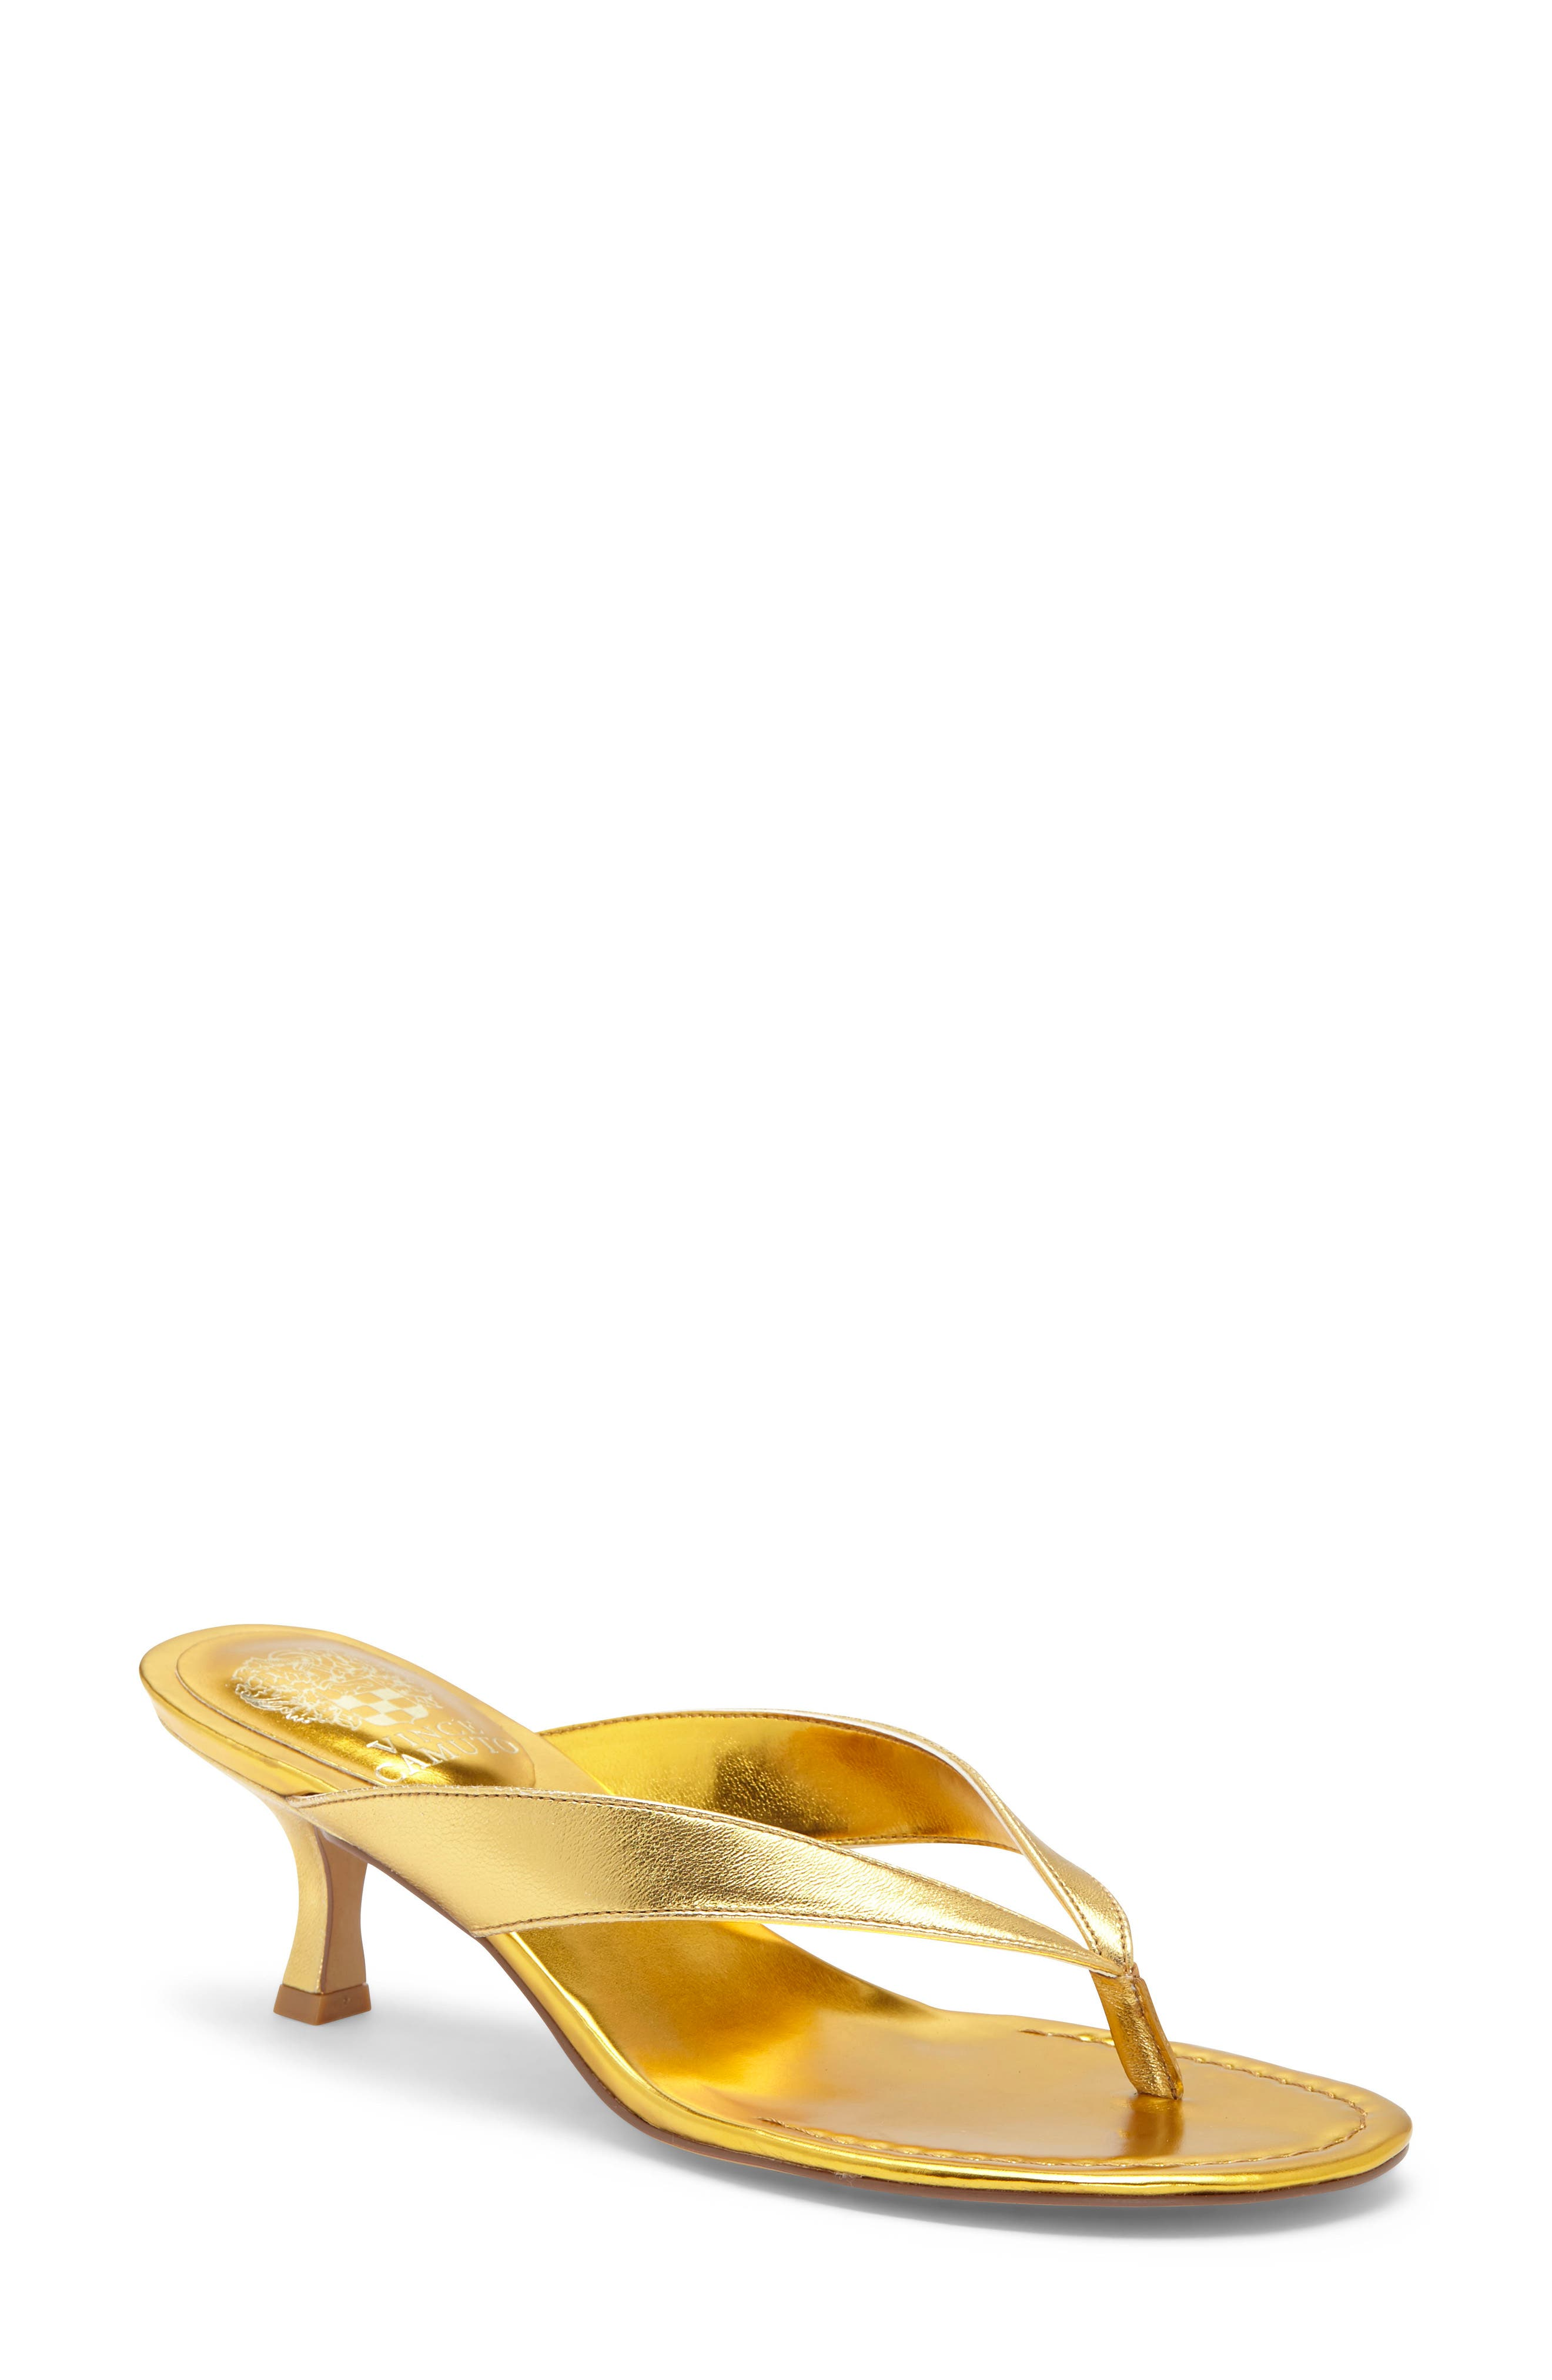 A curvy kitten heel gives a just-right boost to an elevated flip-flop that\'s equal parts easy and sophisticated. Style Name: Vince Camuto Marlinda Kitten Heel Flip Flop (Women). Style Number: 6027946. Available in stores.